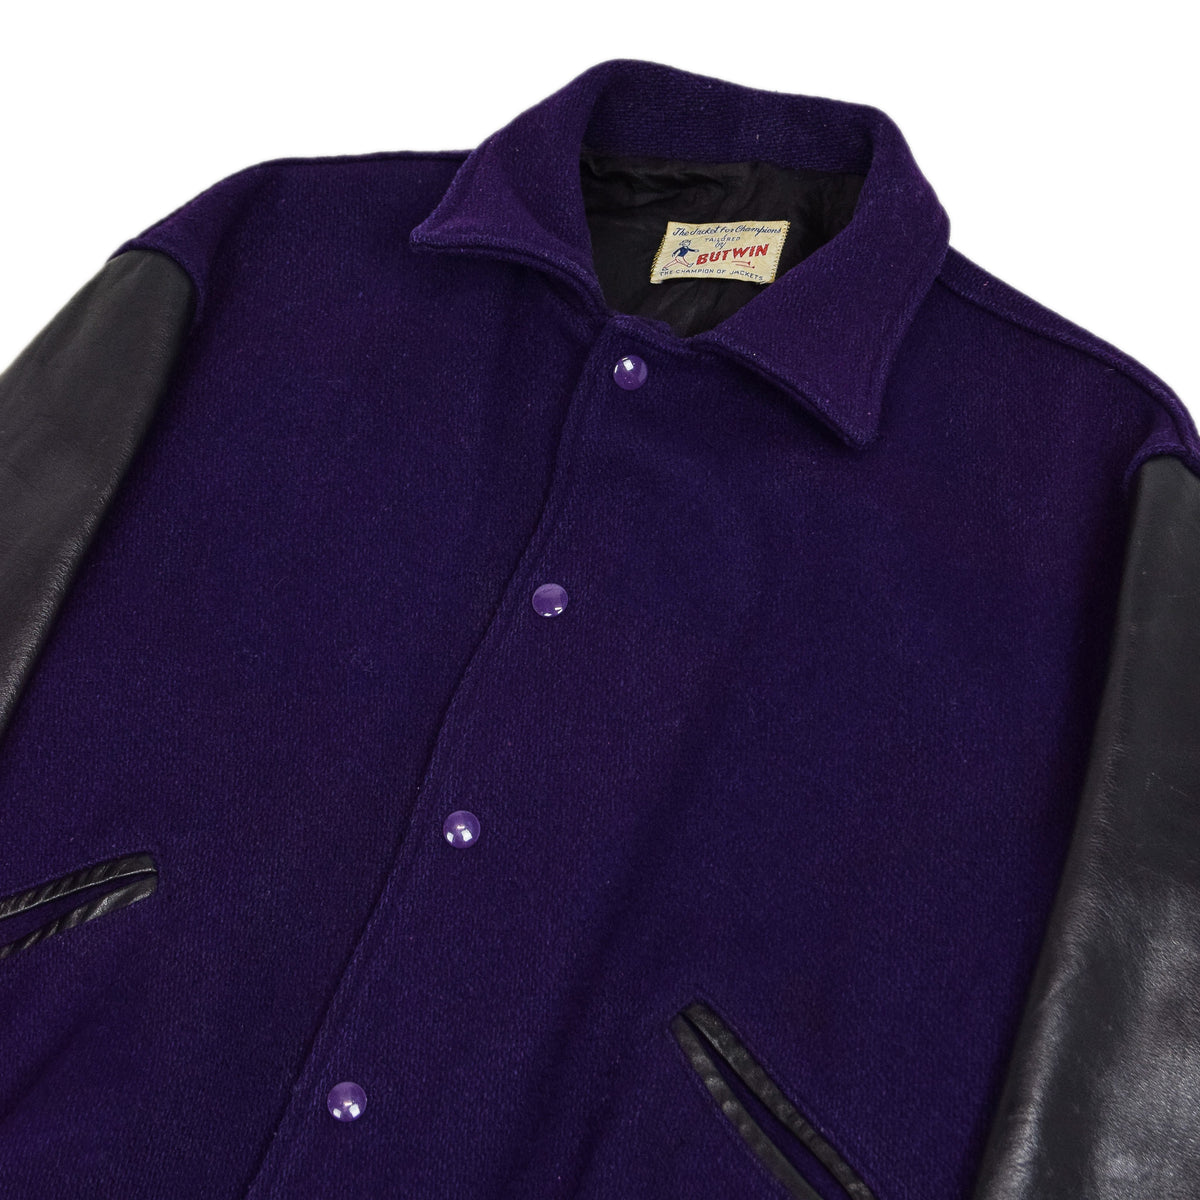 Vintage 60s Butwin Purple Wool Leather Varsity Jacket Lined Made in USA M chest